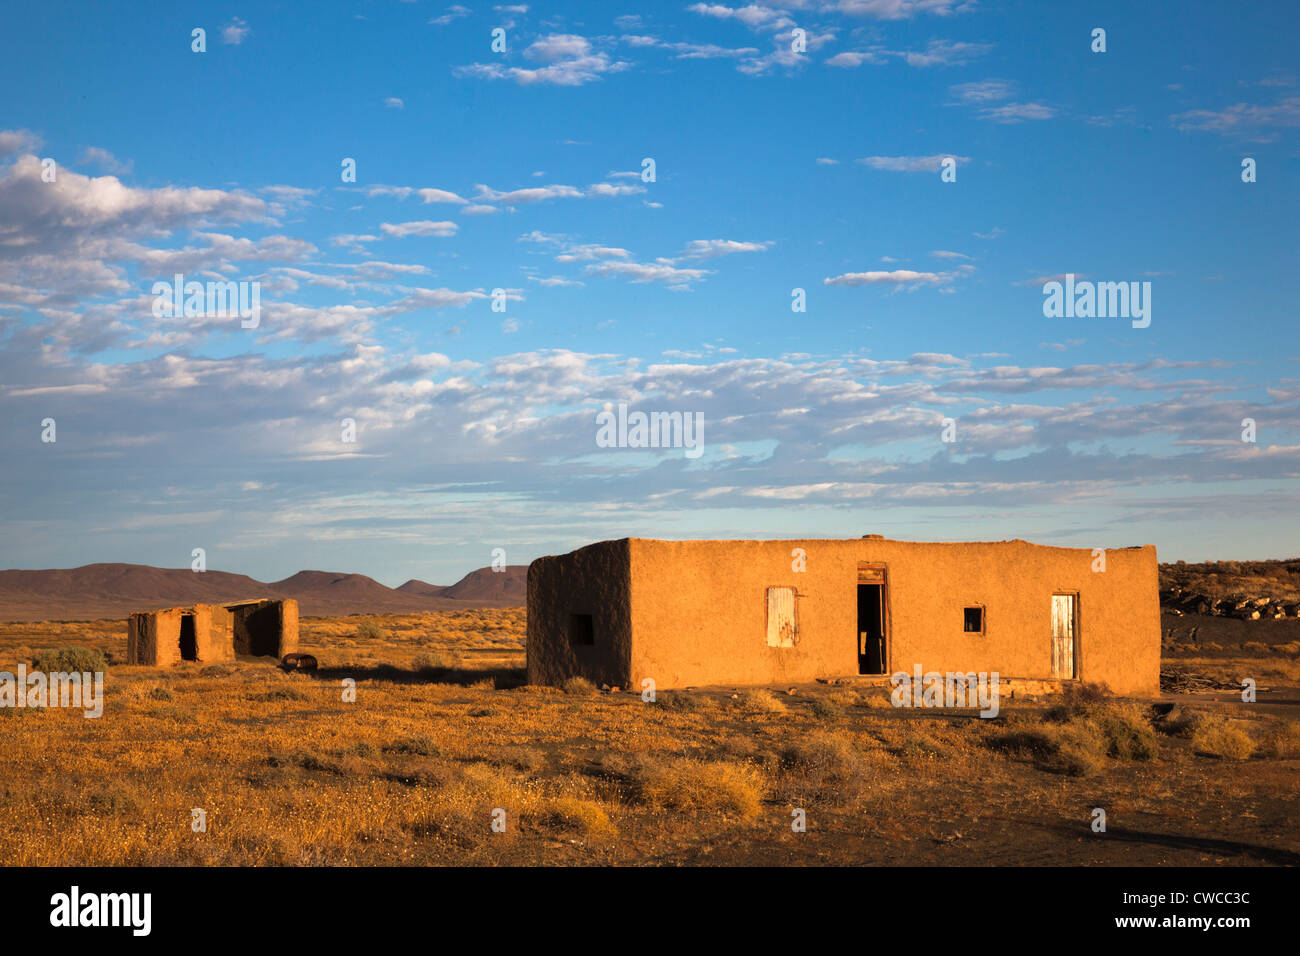 Abandoned farmstead, Tanqua Karoo national park, South Africa - Stock Image